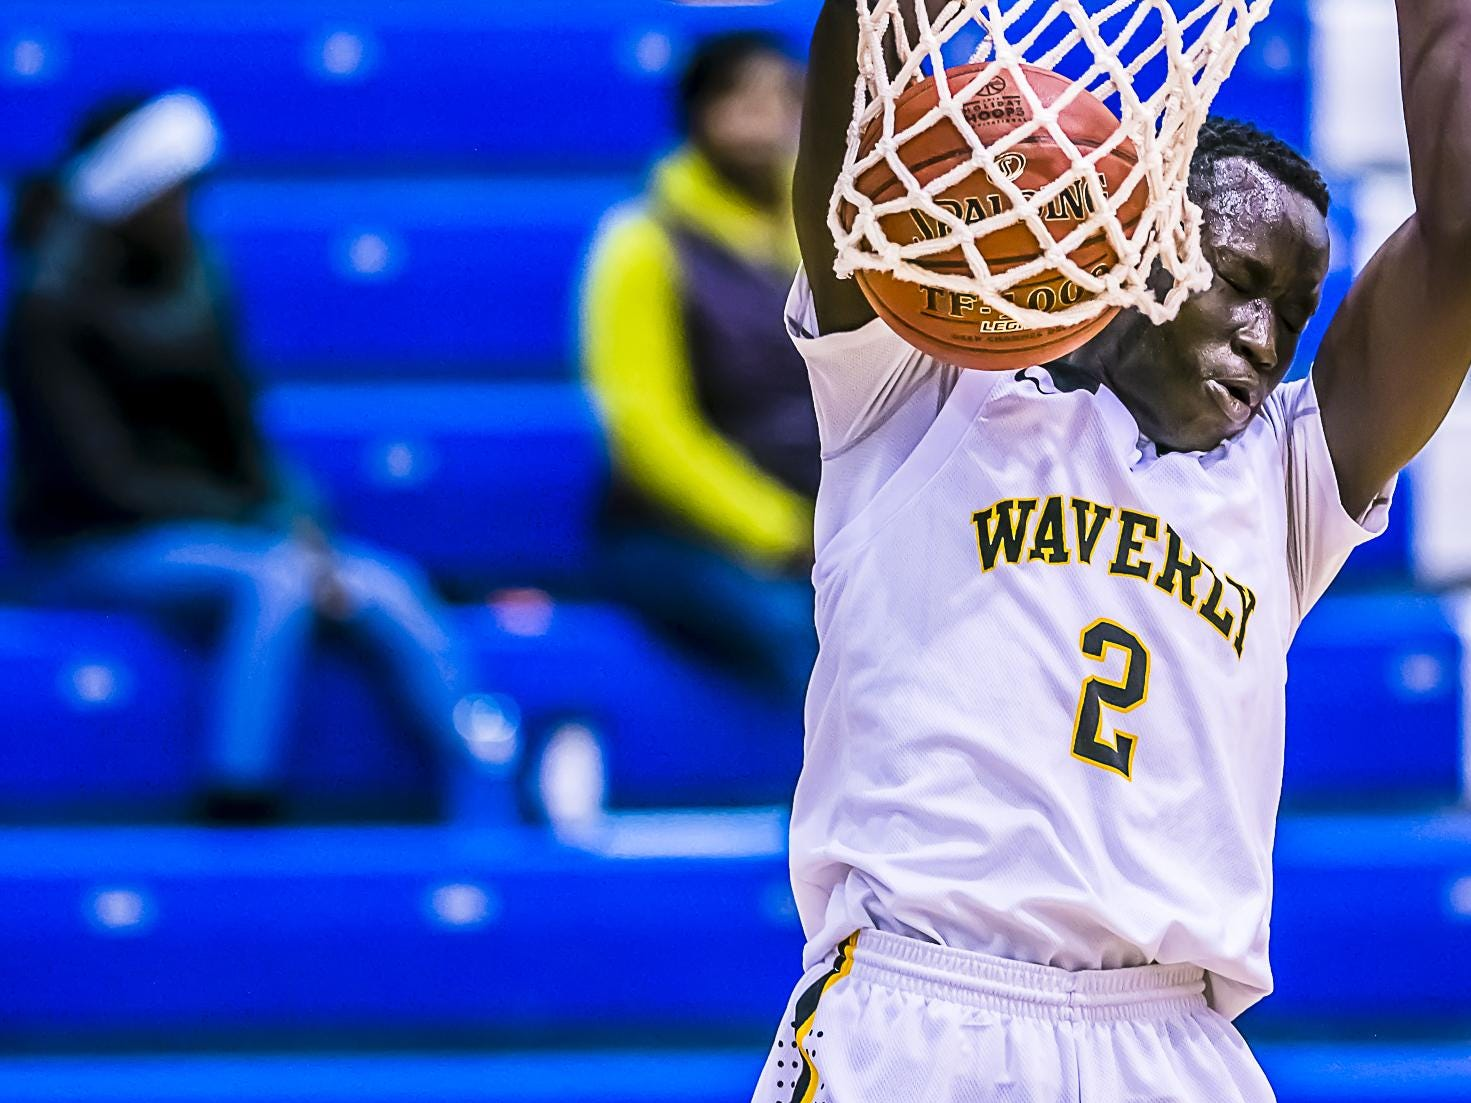 Emmanuel Gildo ,2, of Waverly slams the ball over a Fredrick Douglass defender during their Holiday Hoops Invitational game Tuesday December 29, 2015 at Lansing Community College. KEVIN W. FOWLER PHOTO